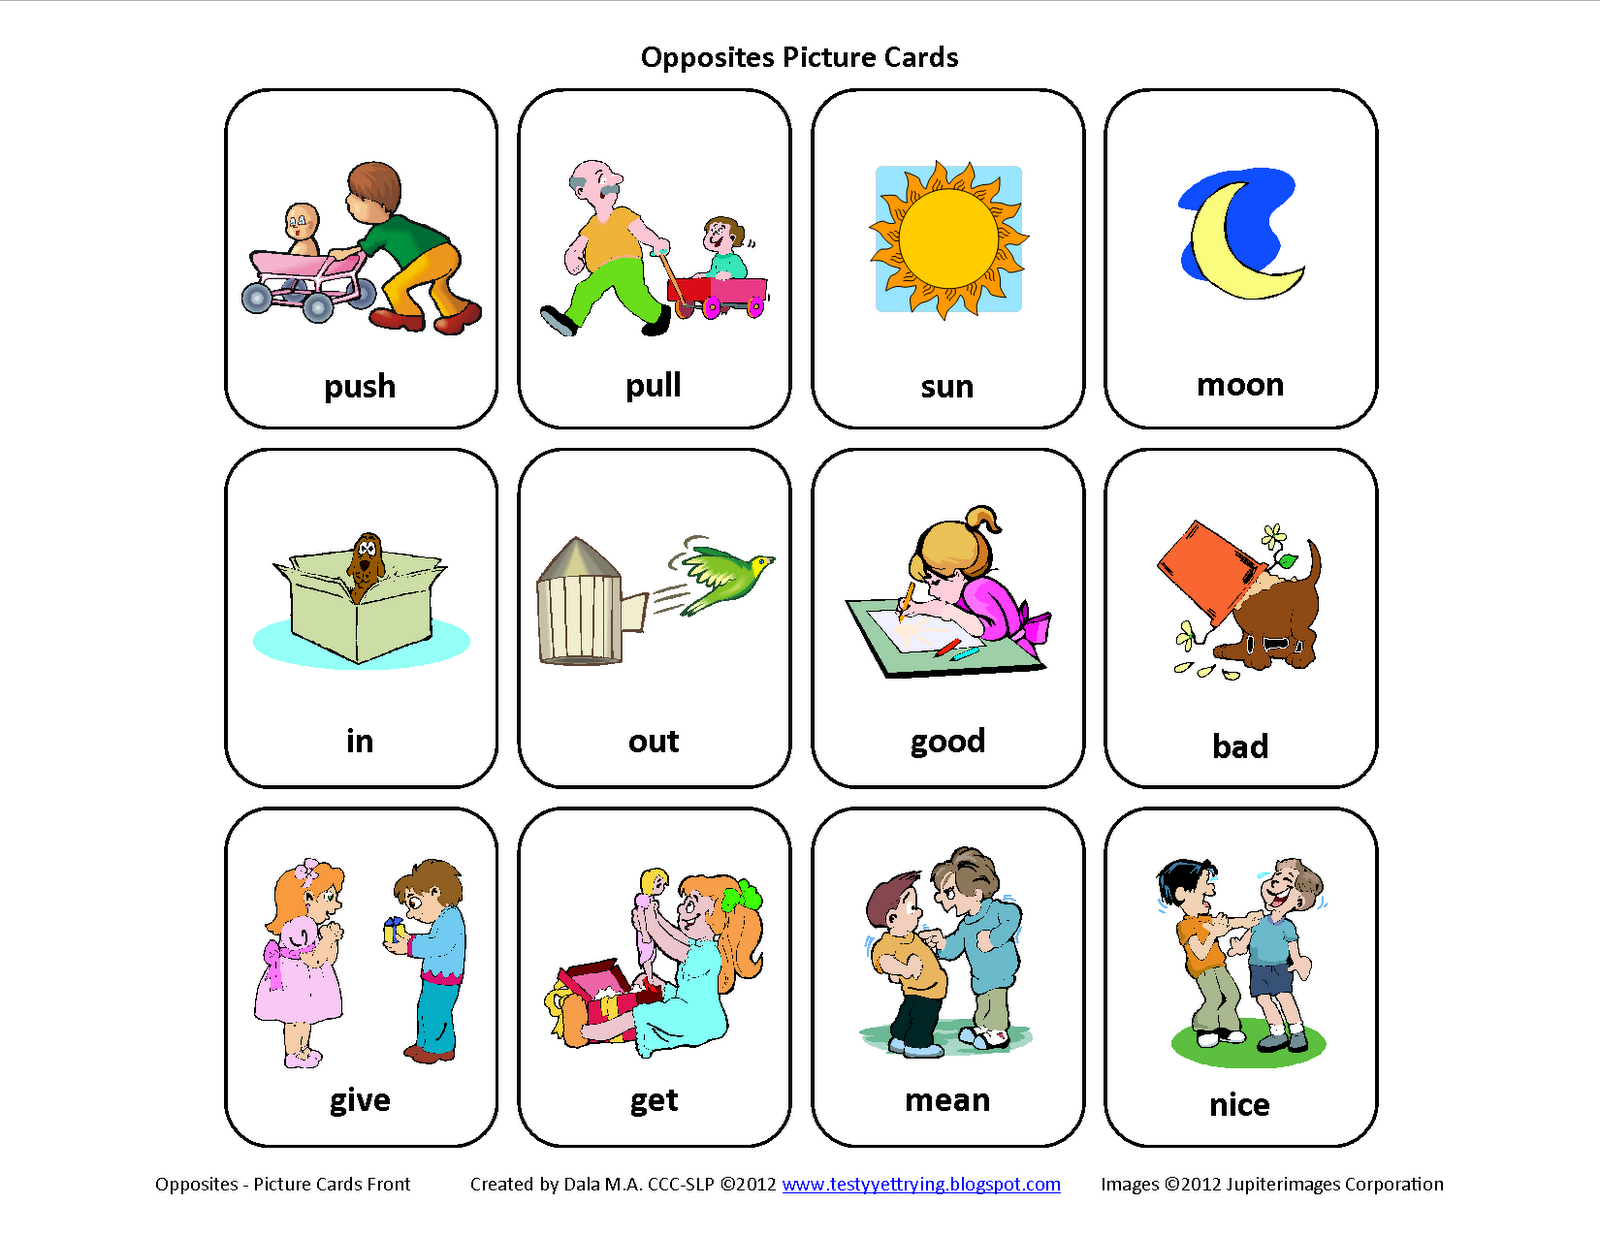 Testy yet trying: Free Mini-Set of Opposites Picture Cards | 1600 x 1236 png 551kB